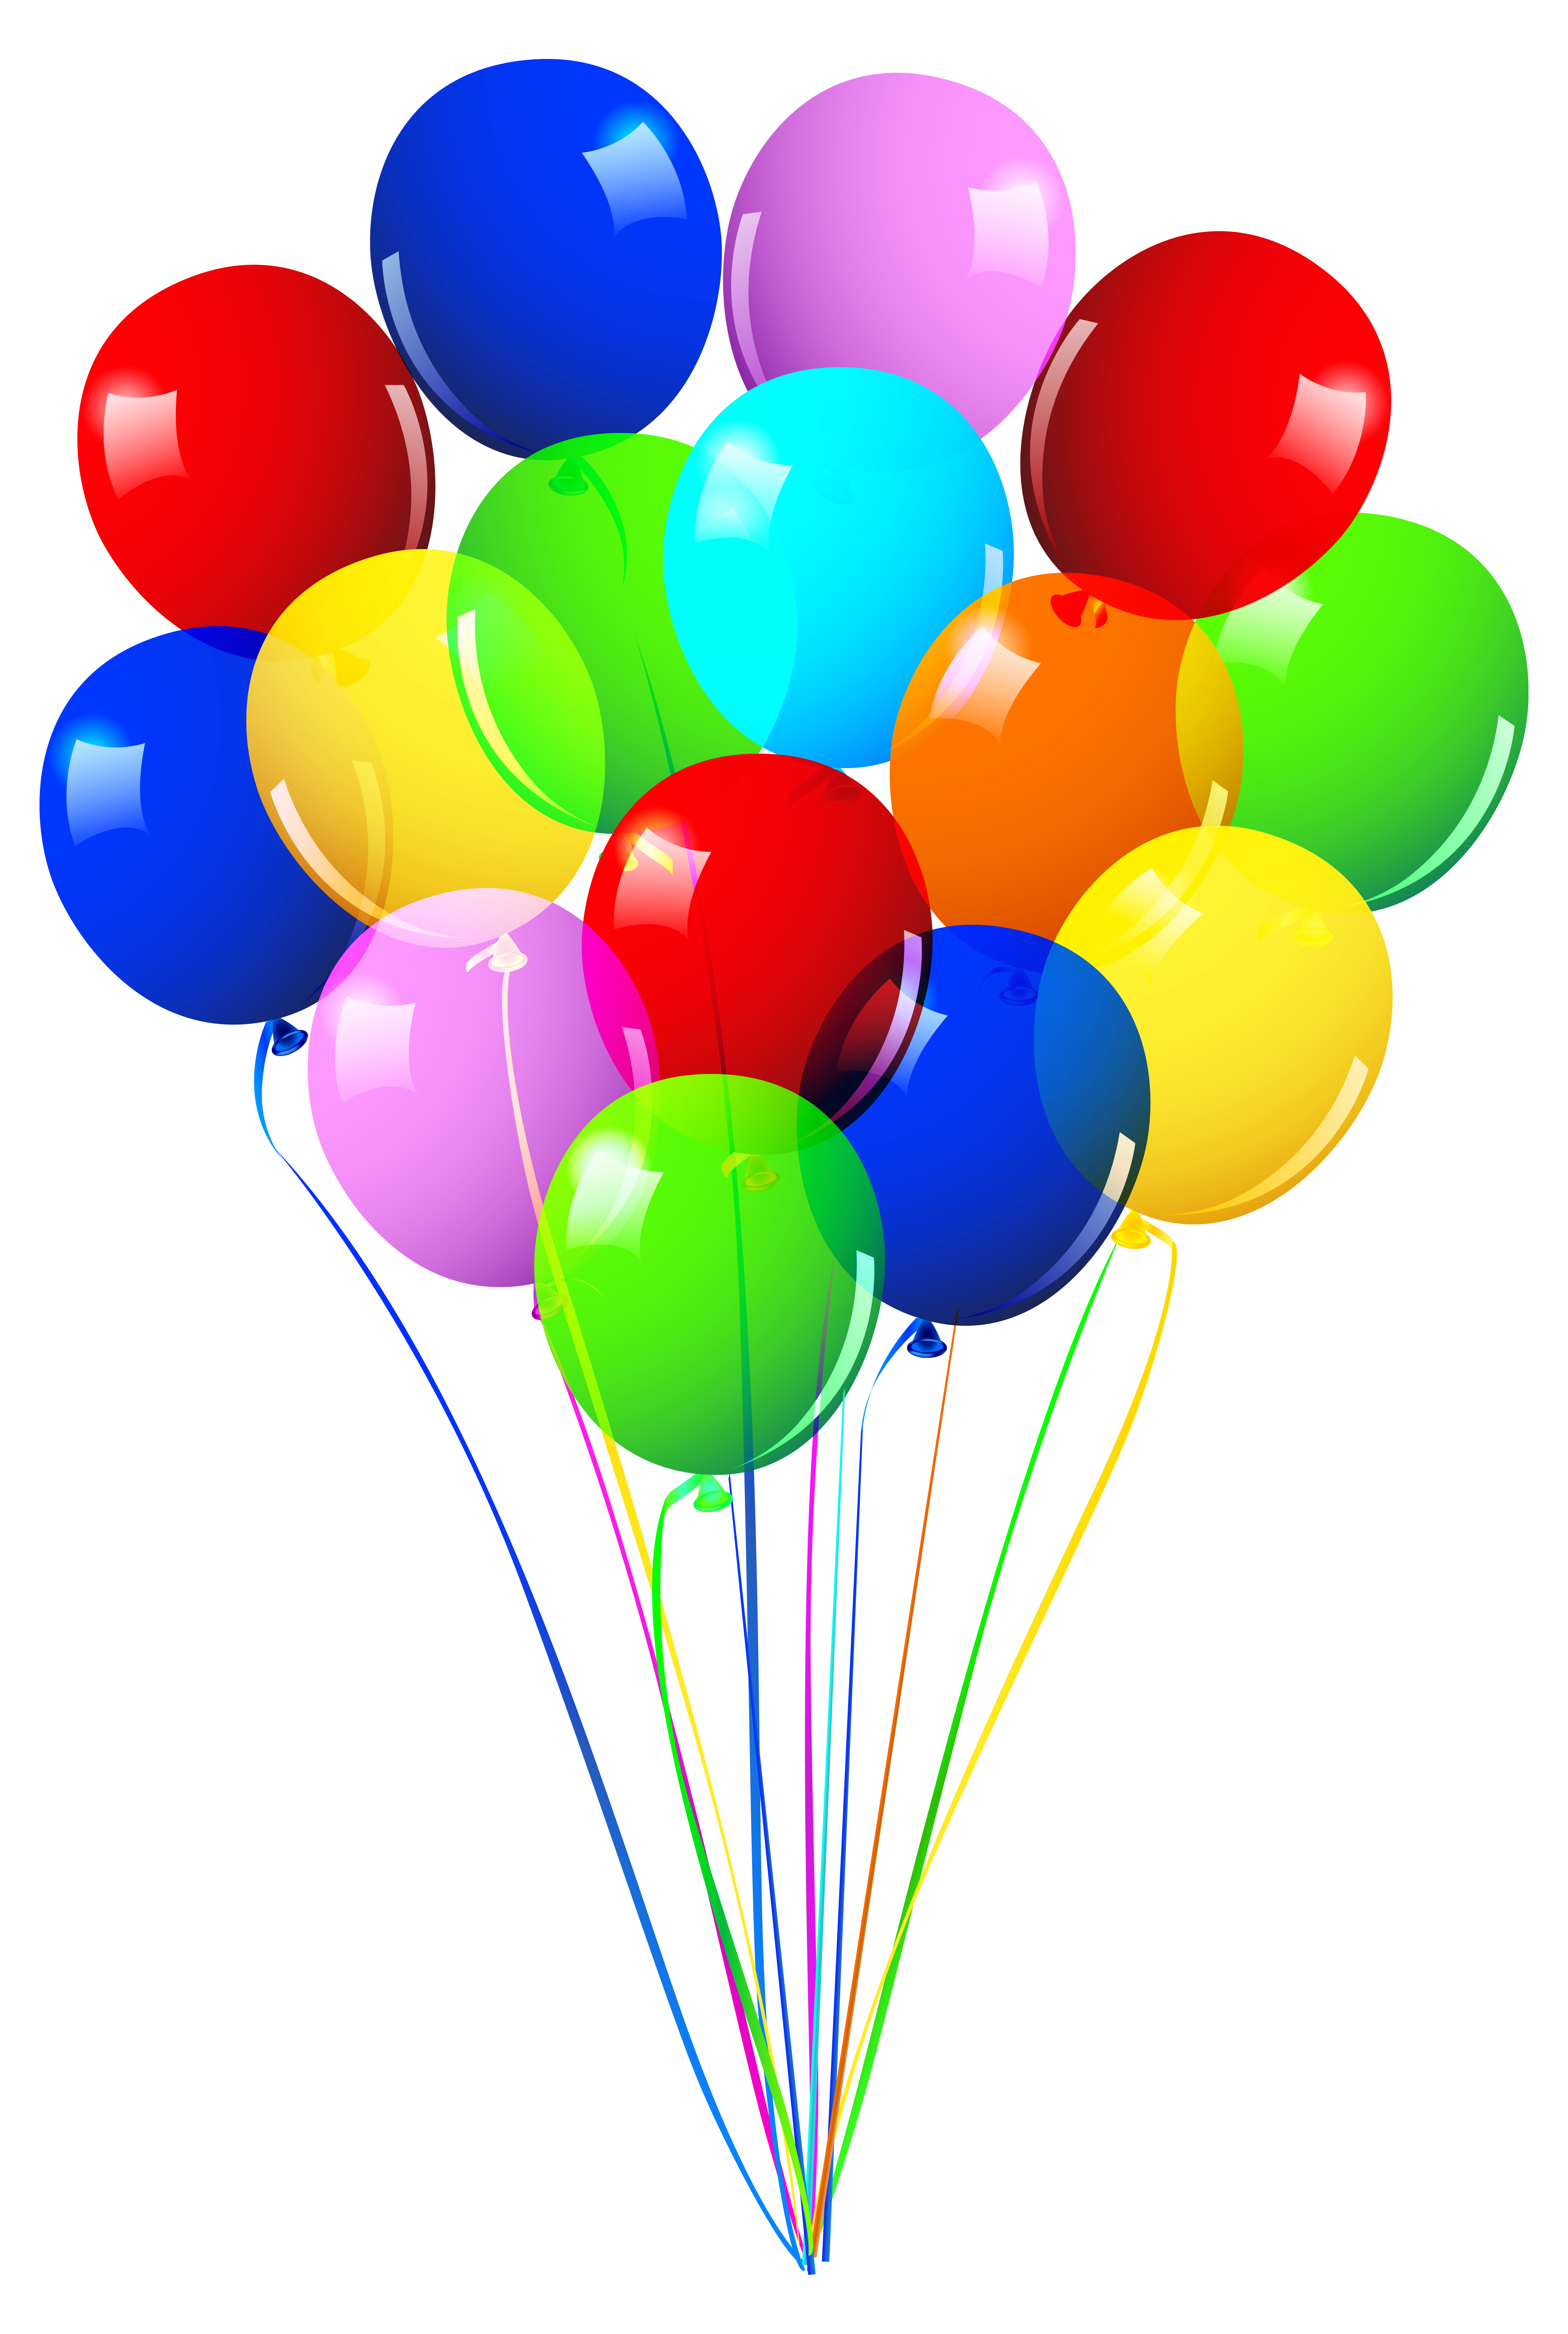 Water balloon toy fight. Streamers clipart party favor